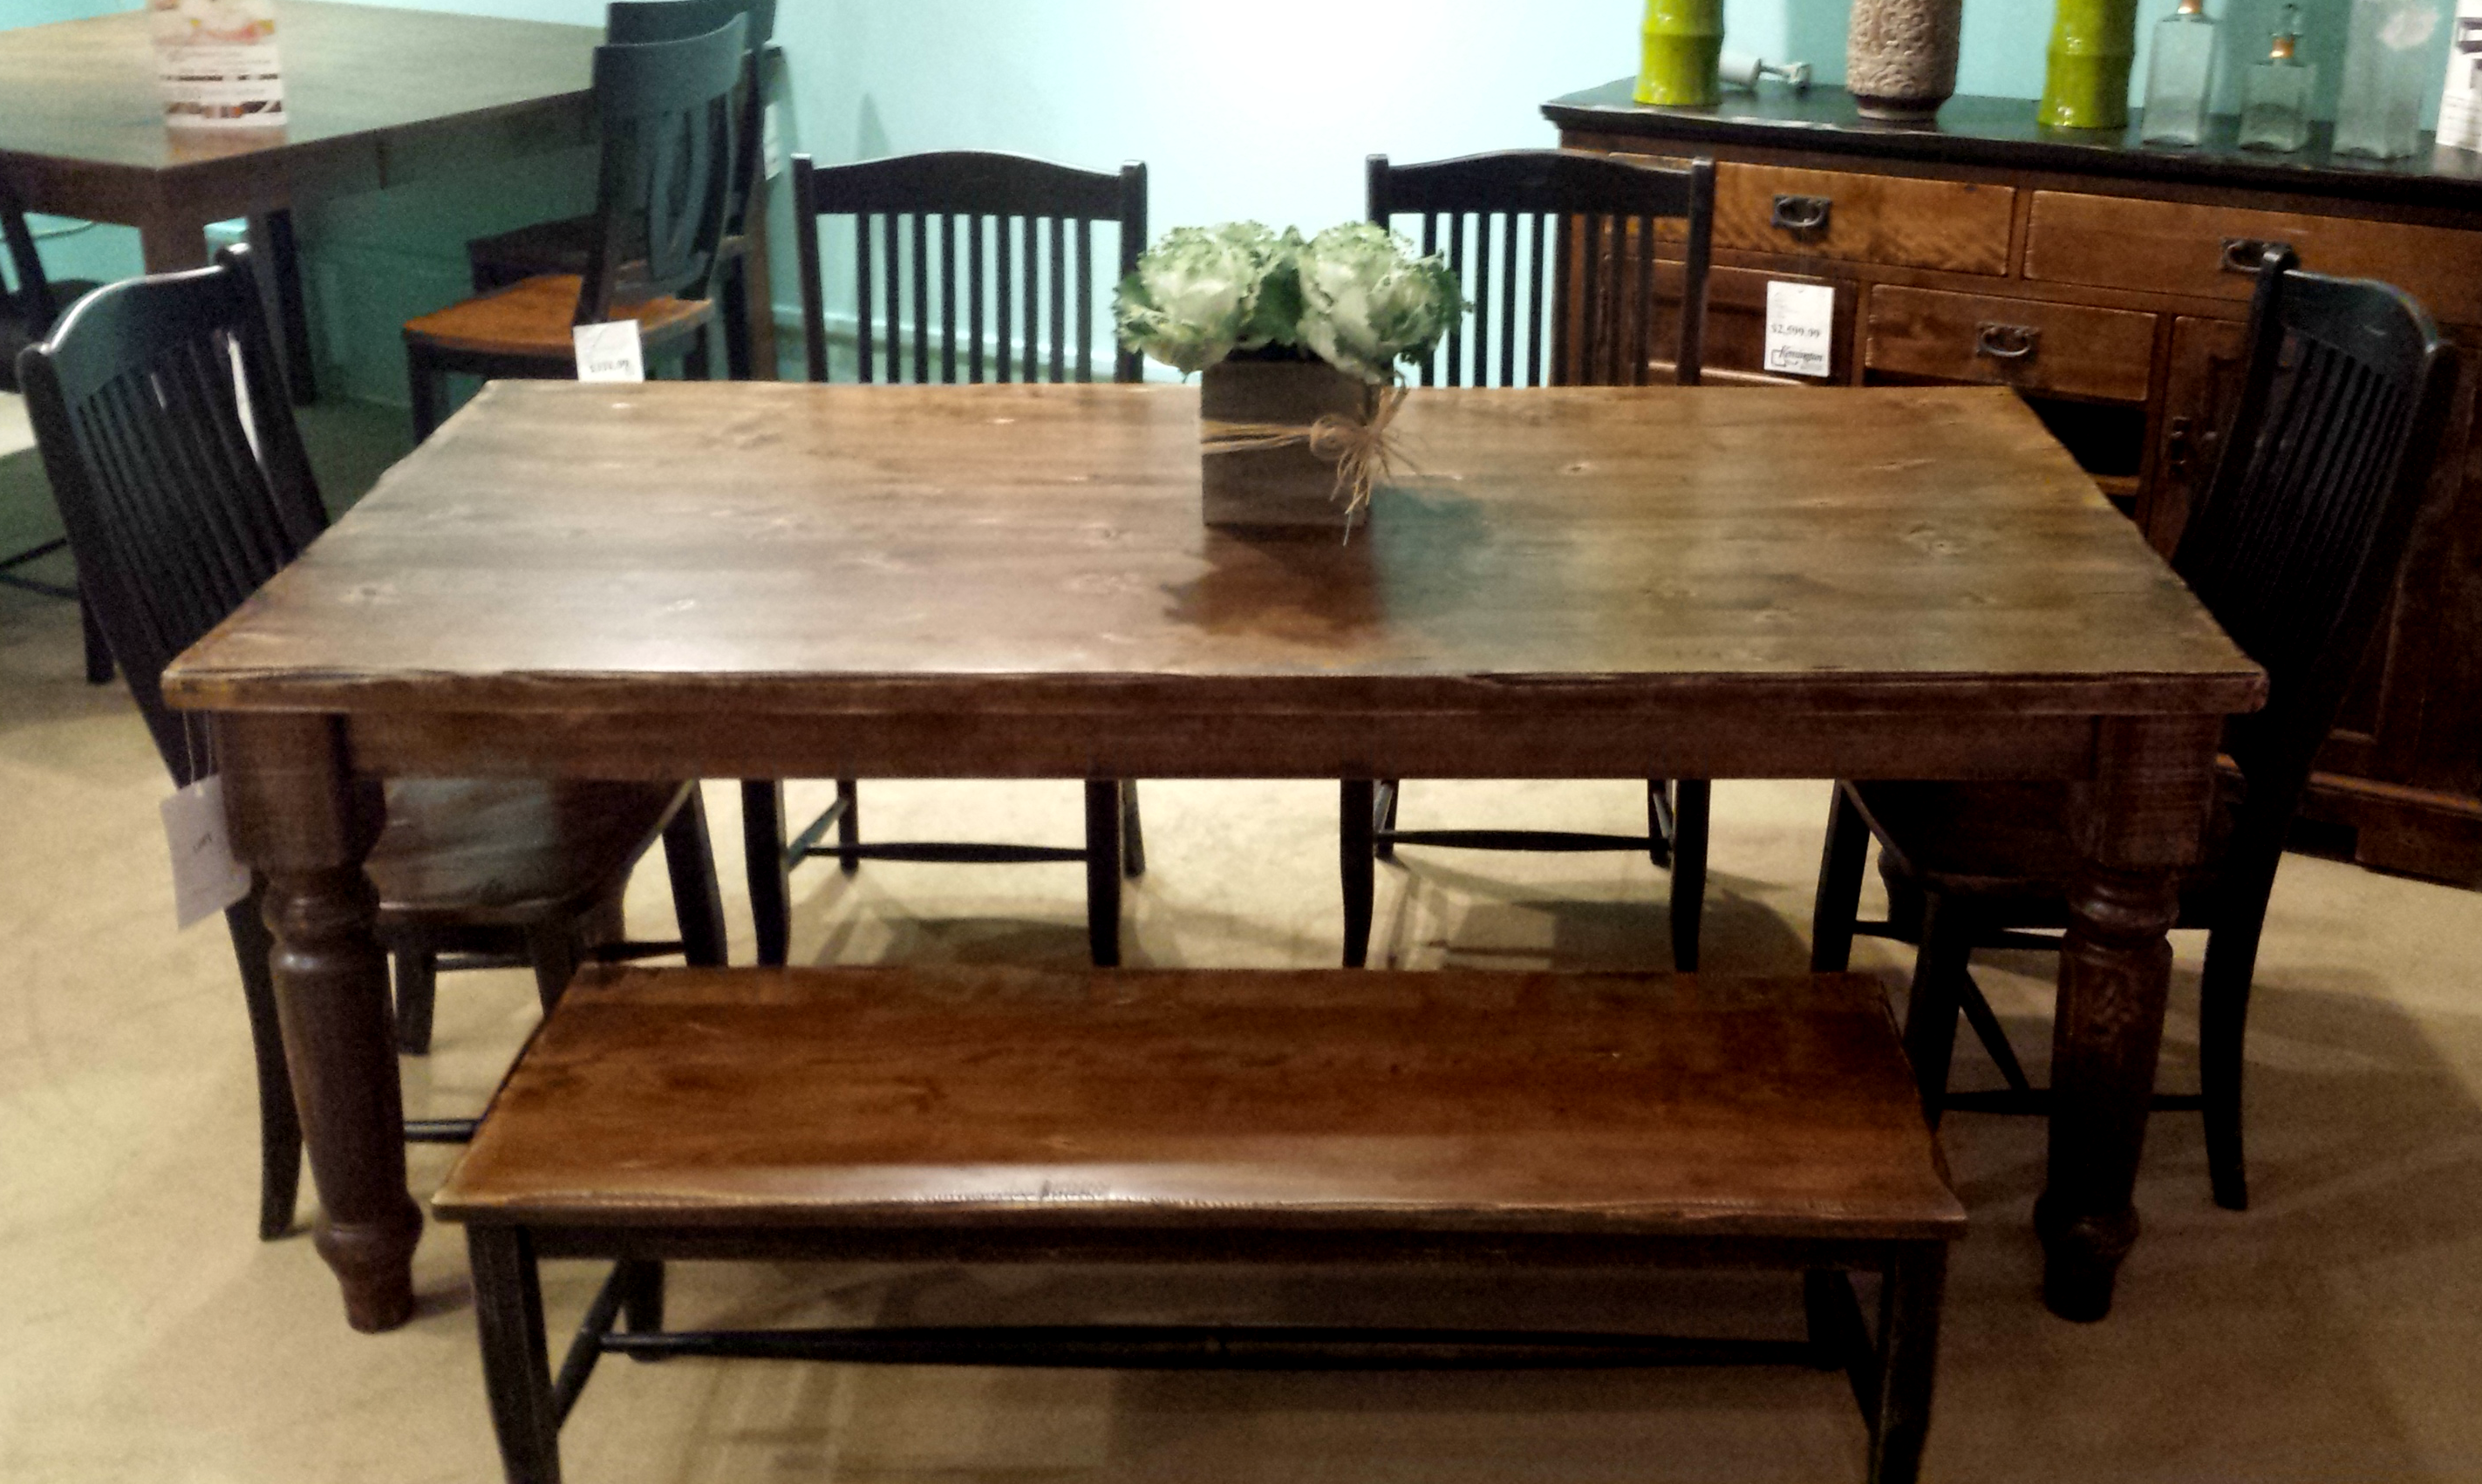 Use The Canadel Dining Tool Before Shopping For Dining Room